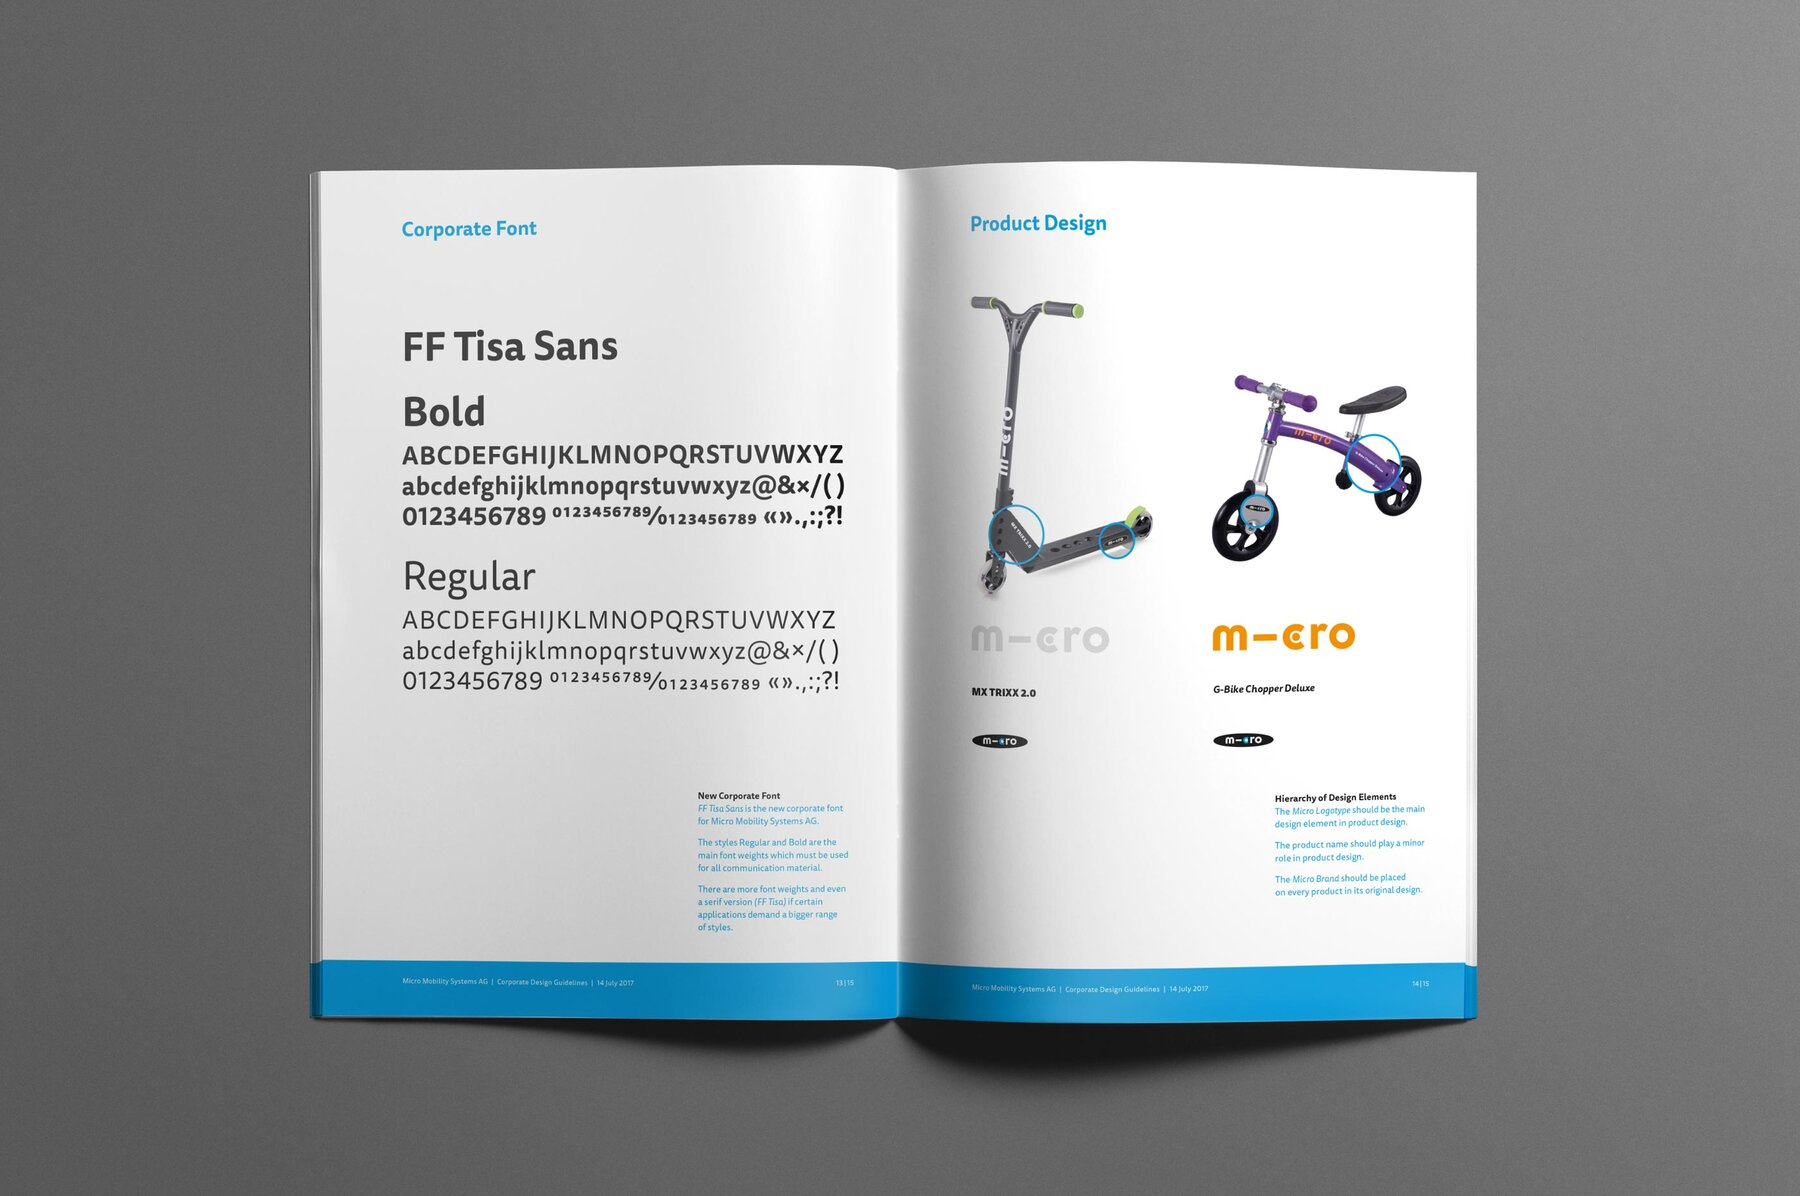 Corporate Design Guidelines Font FF Tisa Sans und product design